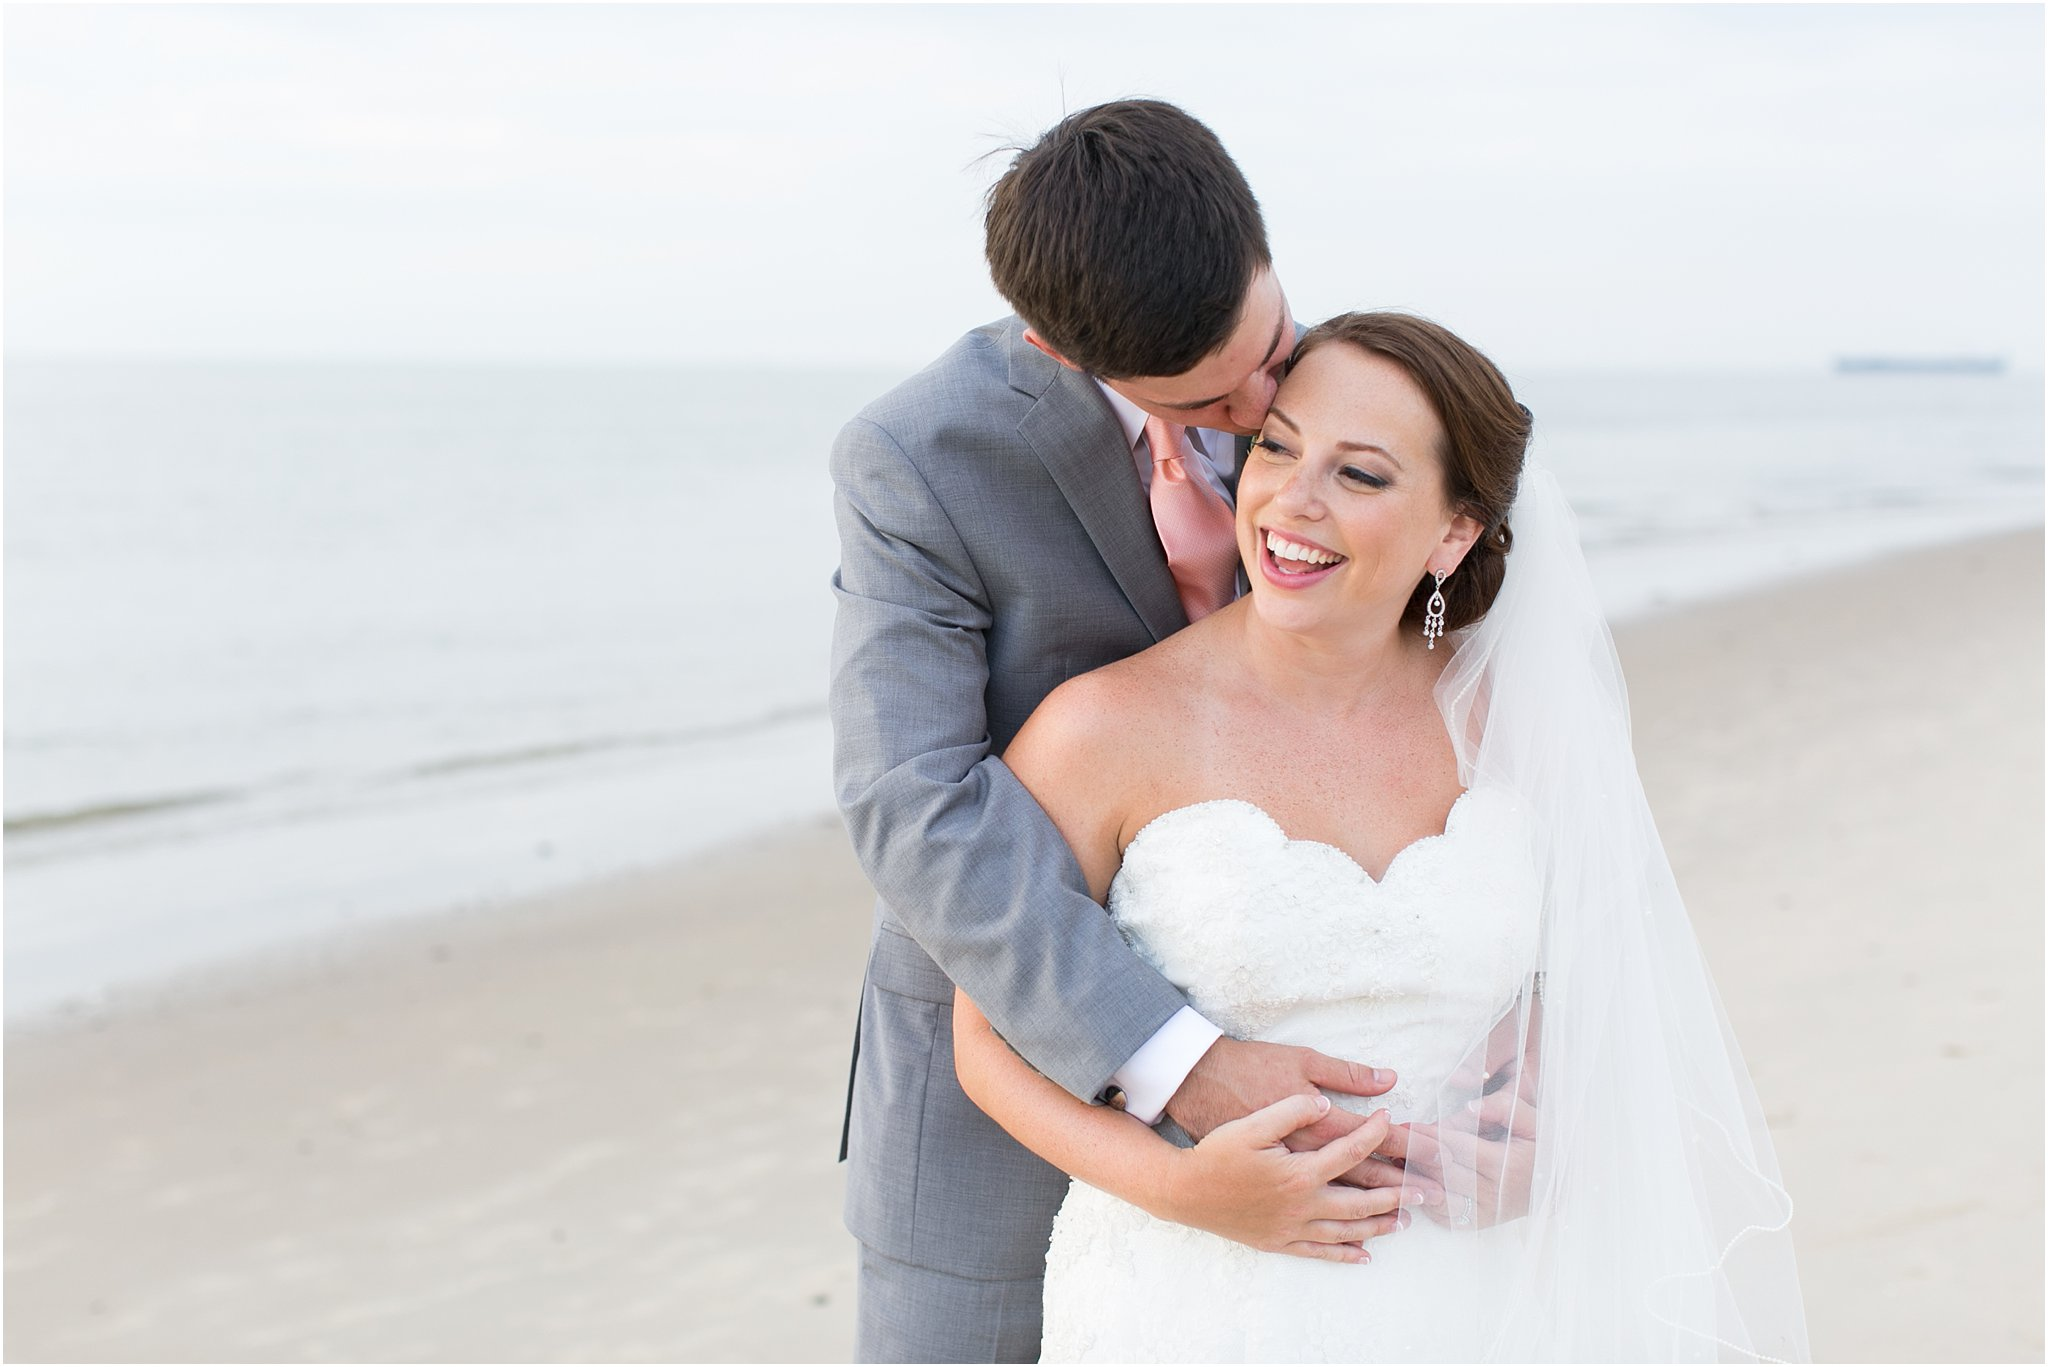 jessica_ryan_photography_wedding_photography_virginiabeach_virginia_candid_authentic_wedding_portraits_marina_shores_yacht_club_chesapeake_bay_1883